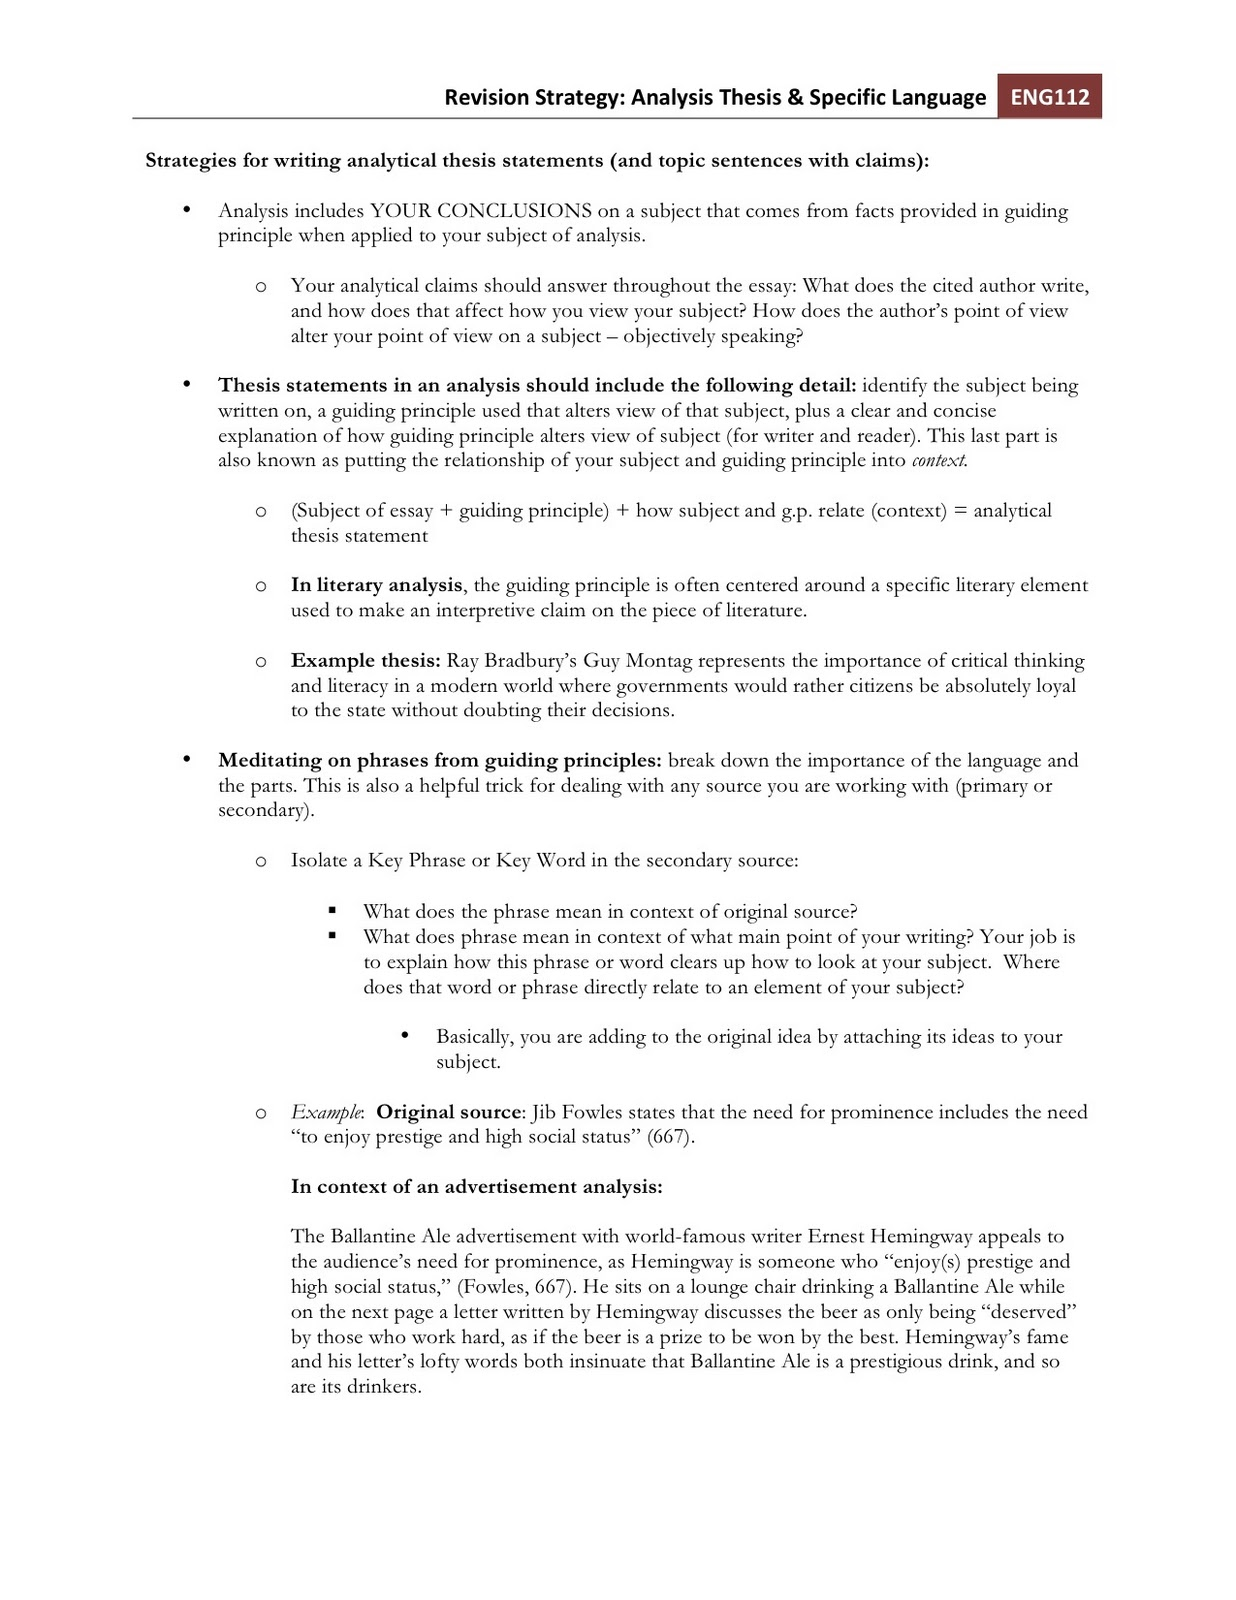 what are key concepts in writing a thesis statement